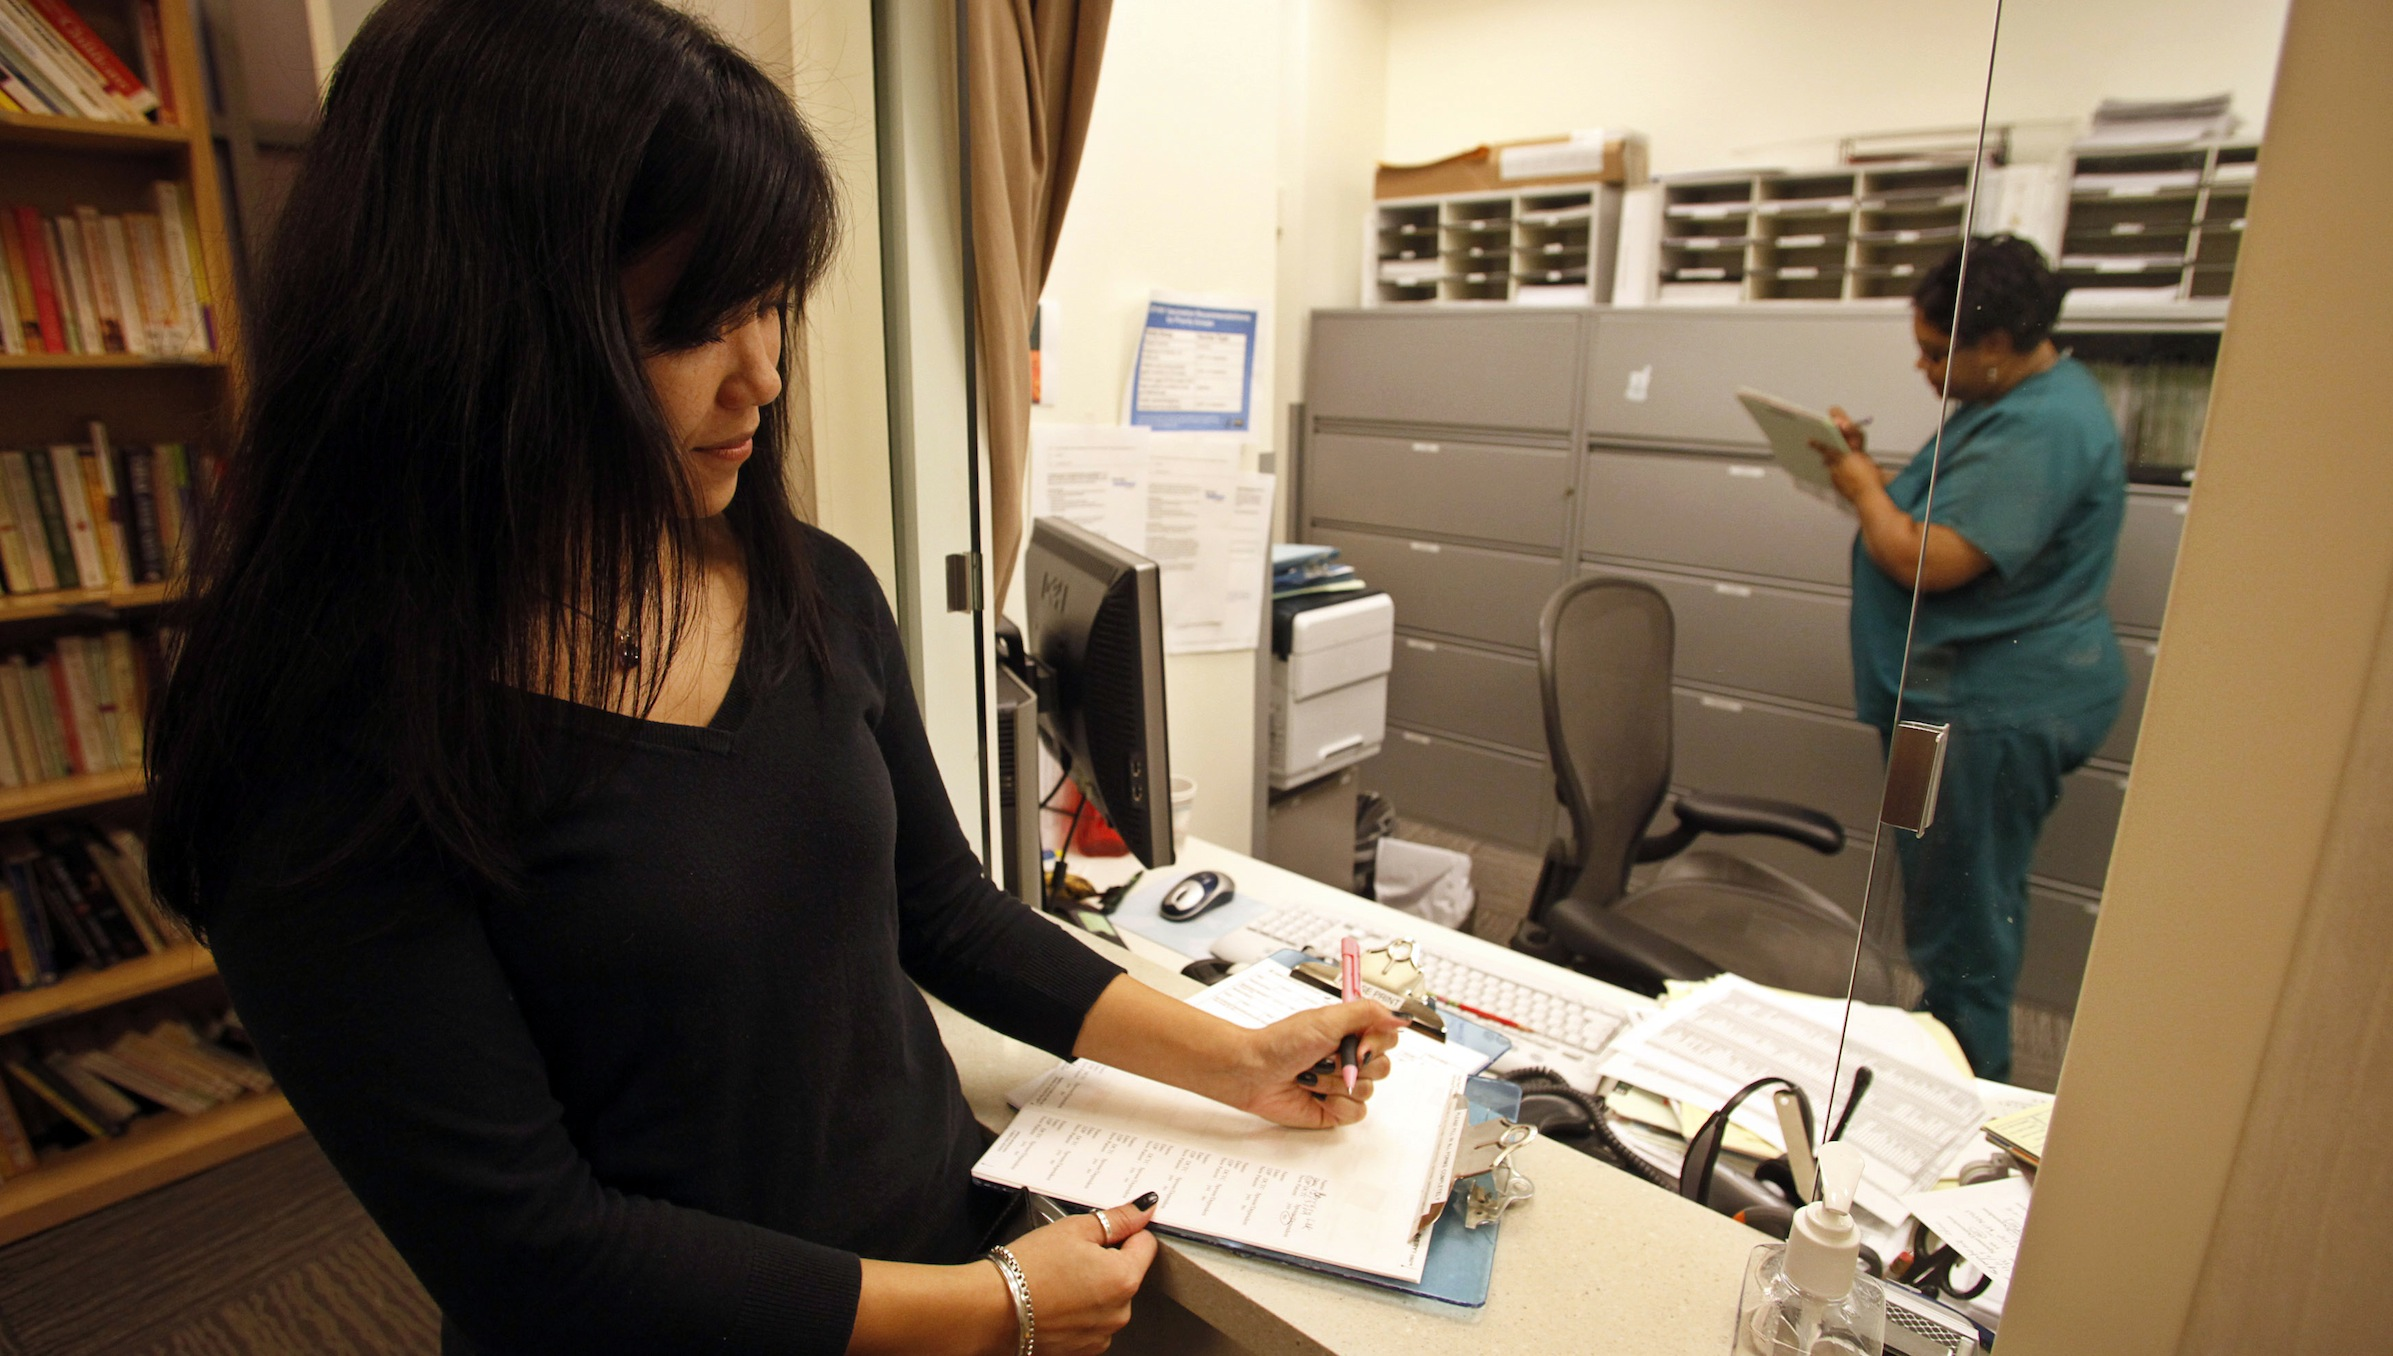 Bonnary Lek, a manager at Discovery Communications headquarters, signs in for a medical appointment at the Discovery Wellness Center at the company's headquarters in Silver Spring, Maryland December 3, 2009. The parent of Animal Planet, the Discovery Channel and other major cable television channels calculates it saved $5 million since opening a corporate wellness center with a clinic and other wellness programs five years ago. About $4 million of that is from lower medical claim costs. Picture taken December 3, 2009. As Democratic lawmakers in Washington inch ahead with plans to overhaul the U.S. healthcare system, companies like Discovery are striking out on their own -- whether through on-site doctors or diet plans -- to rein in soaring costs in a nation where employers still pay for the bulk of medical care. To match Special Report USA-HEALTHCARE/WELLNESS   REUTERS/Jim Bourg   (UNITED STATES HEALTH BUSINESS SOCIETY) - RTXRMUO